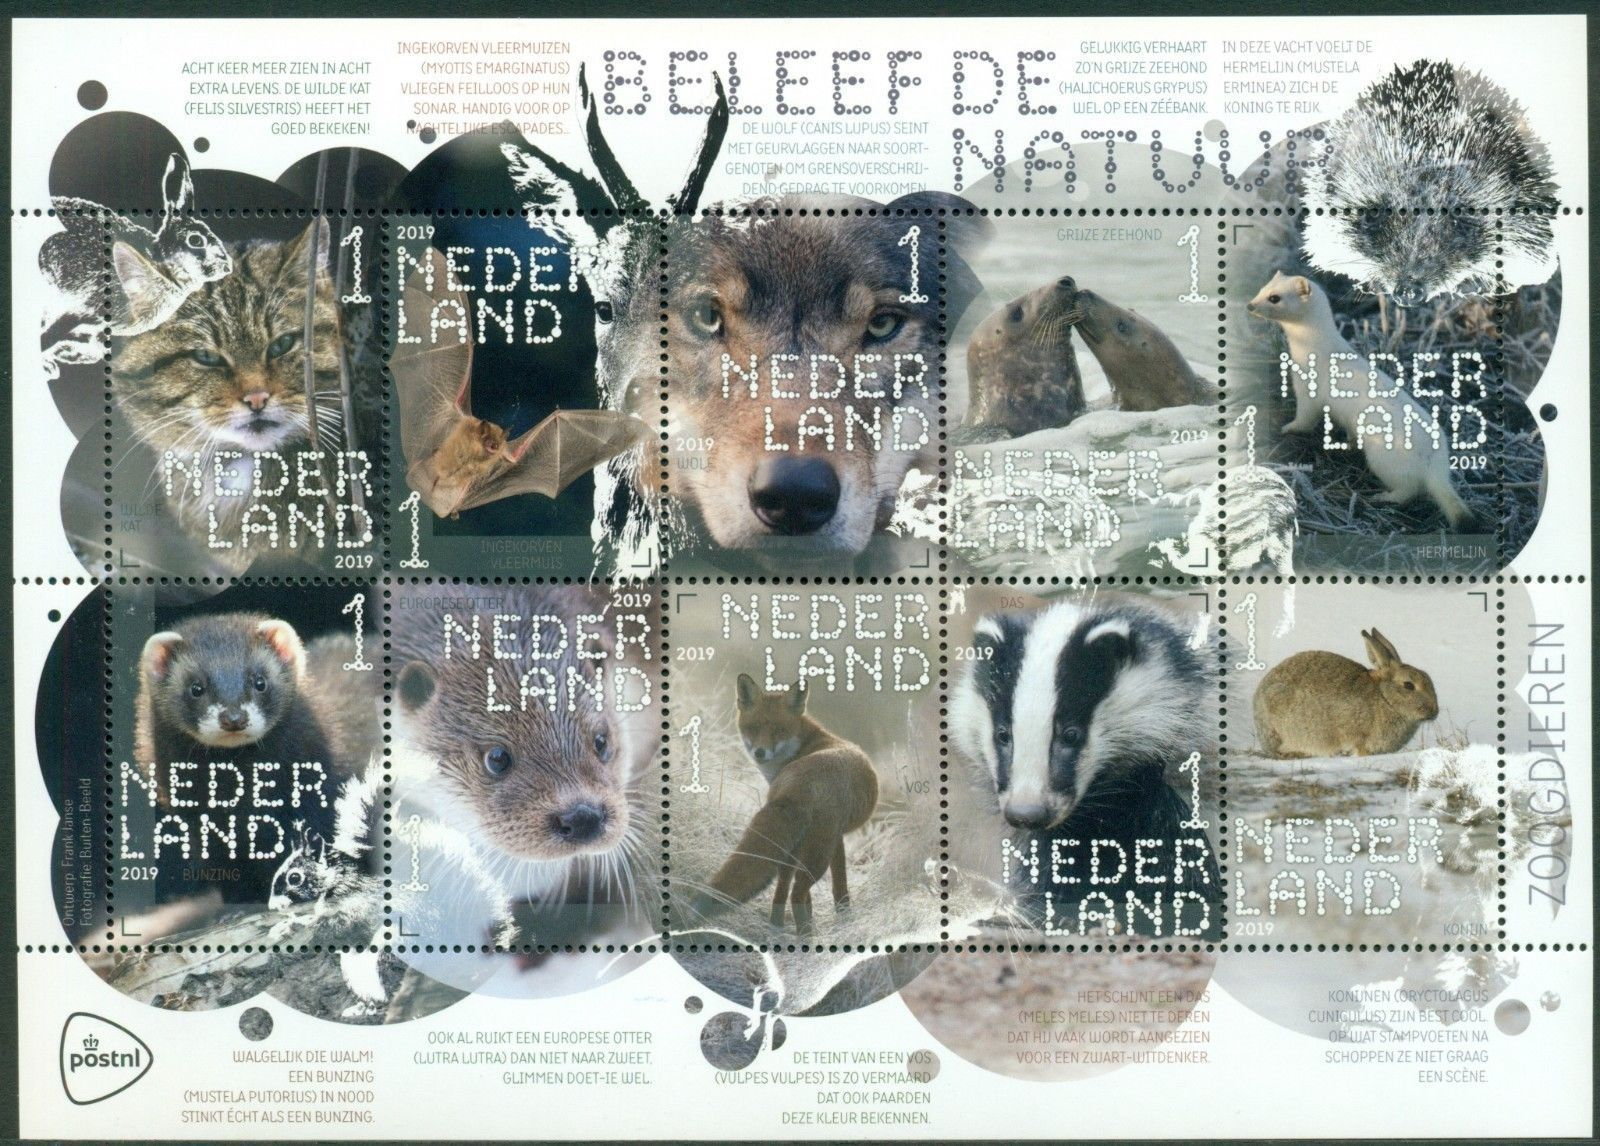 Netherlands - Experience Nature (January 2, 2019) miniature sheet of 10